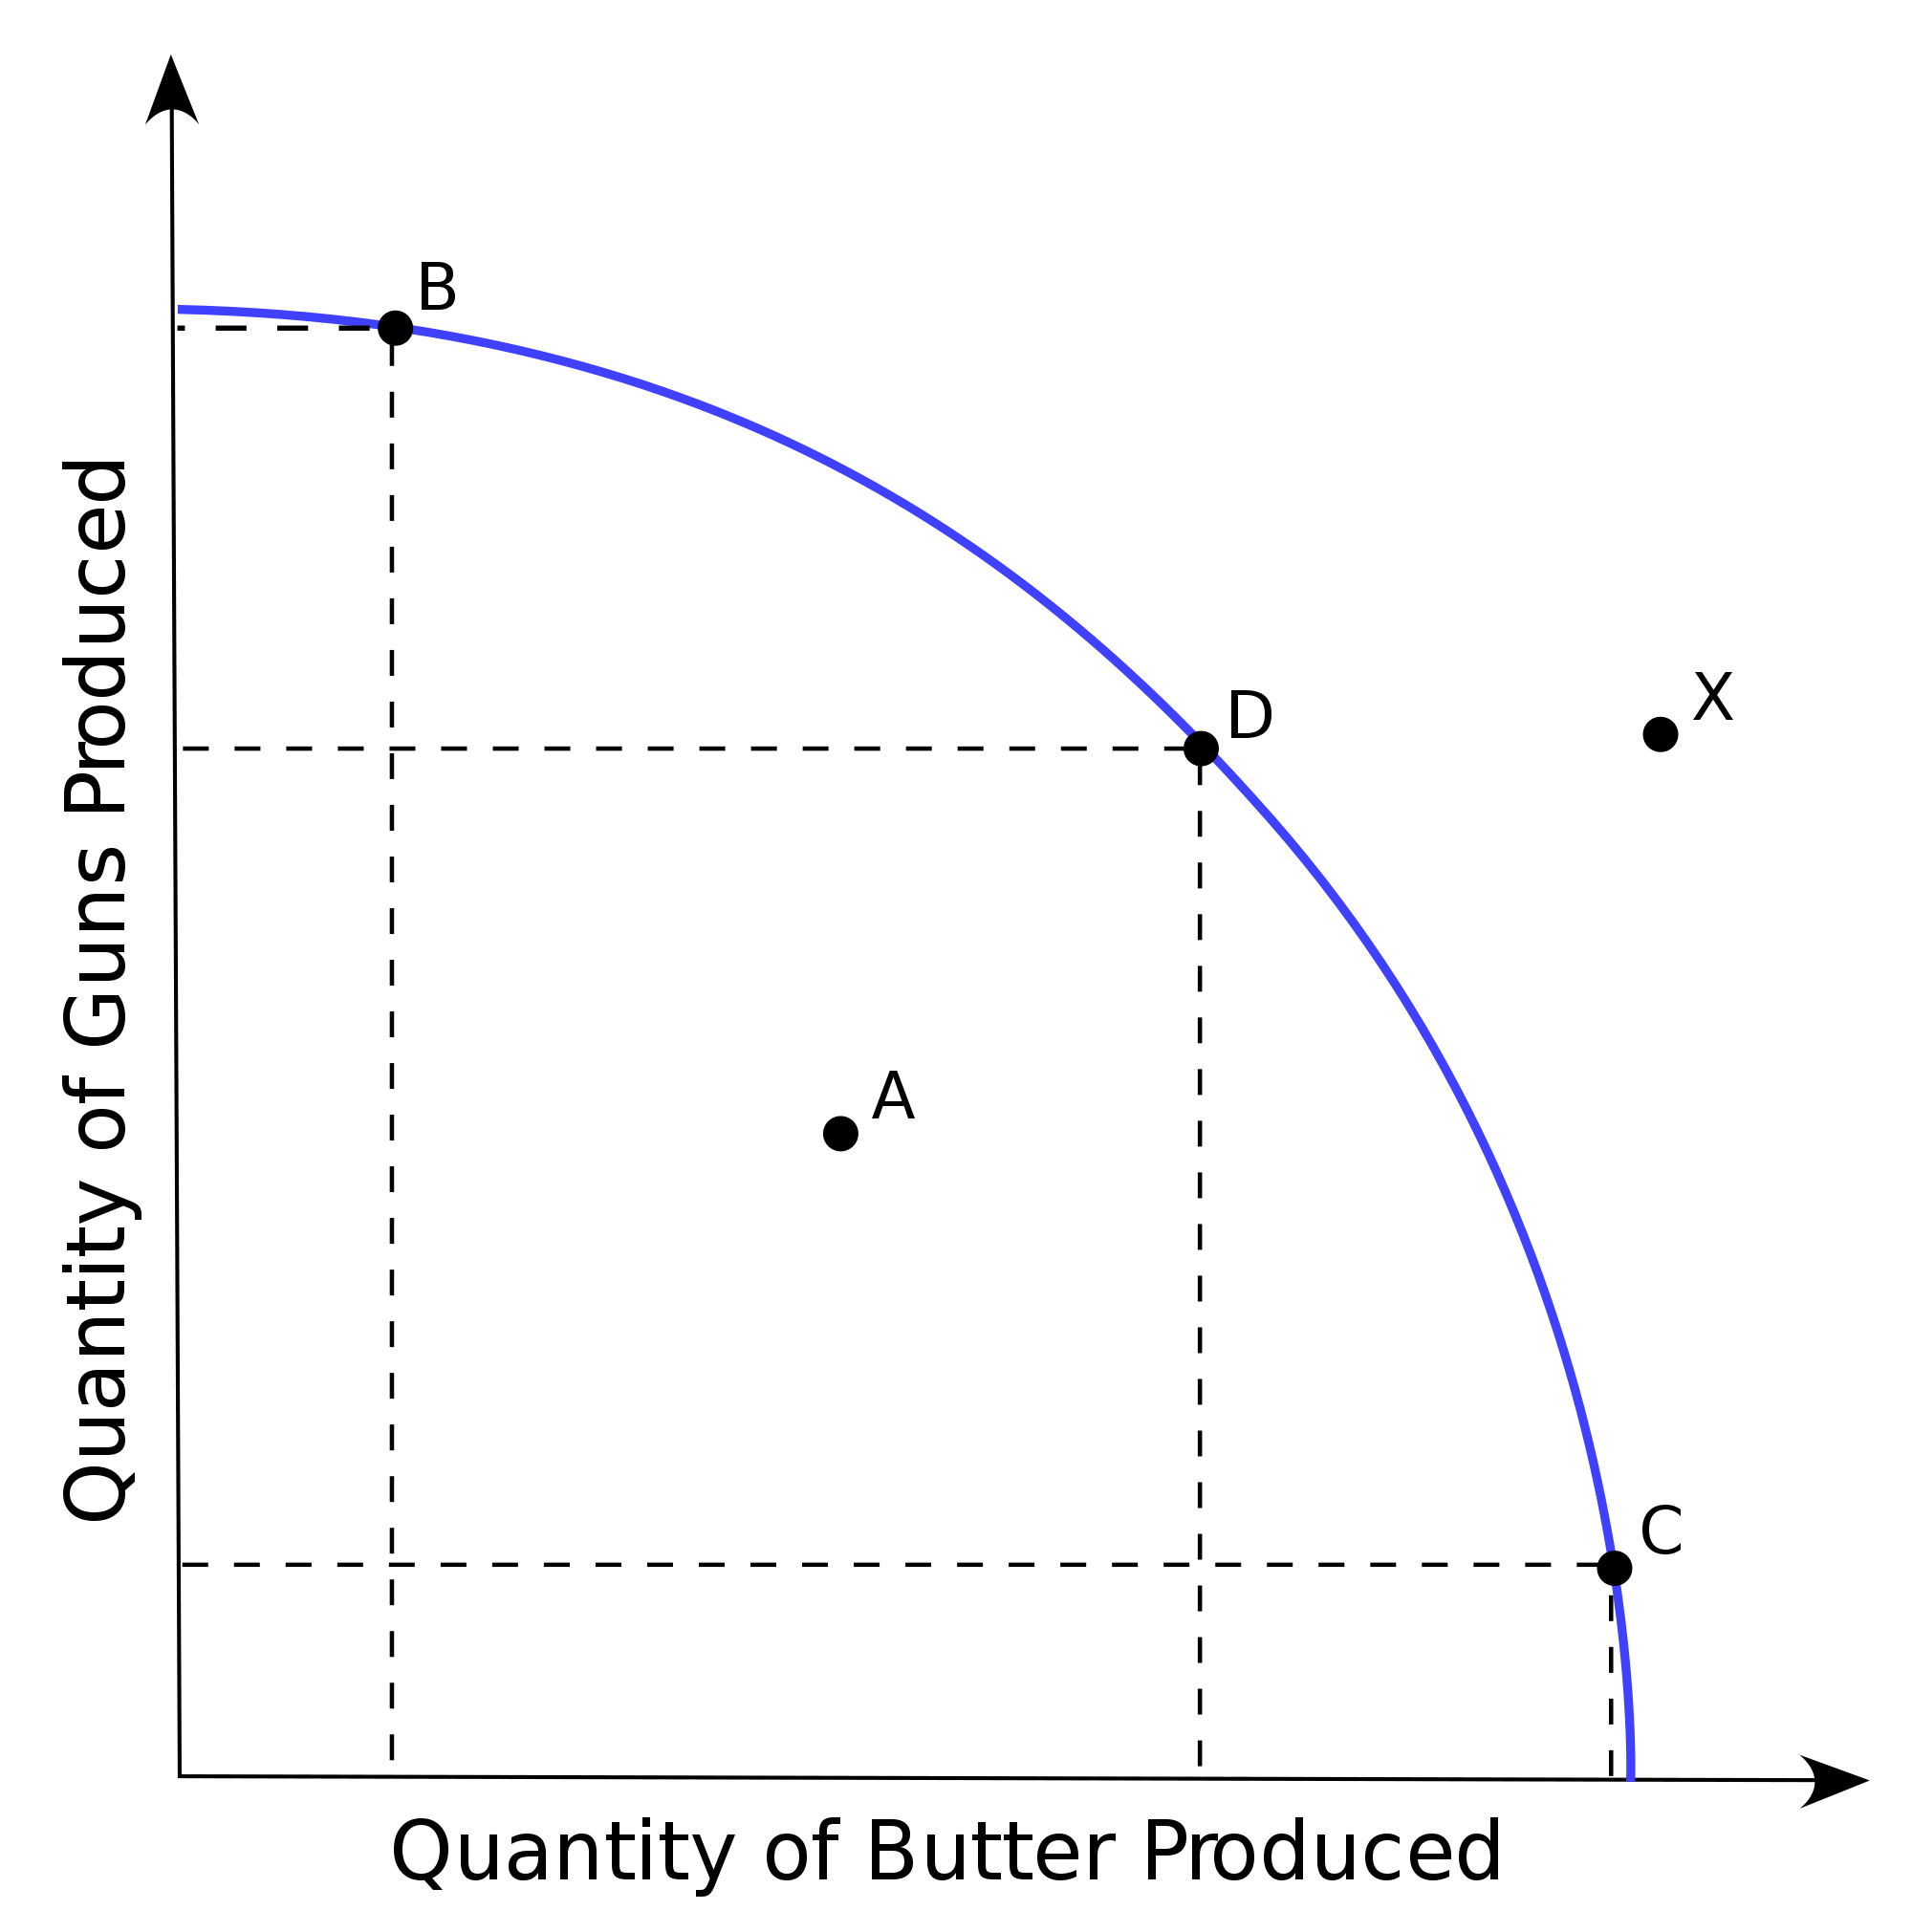 Trade Off Curve